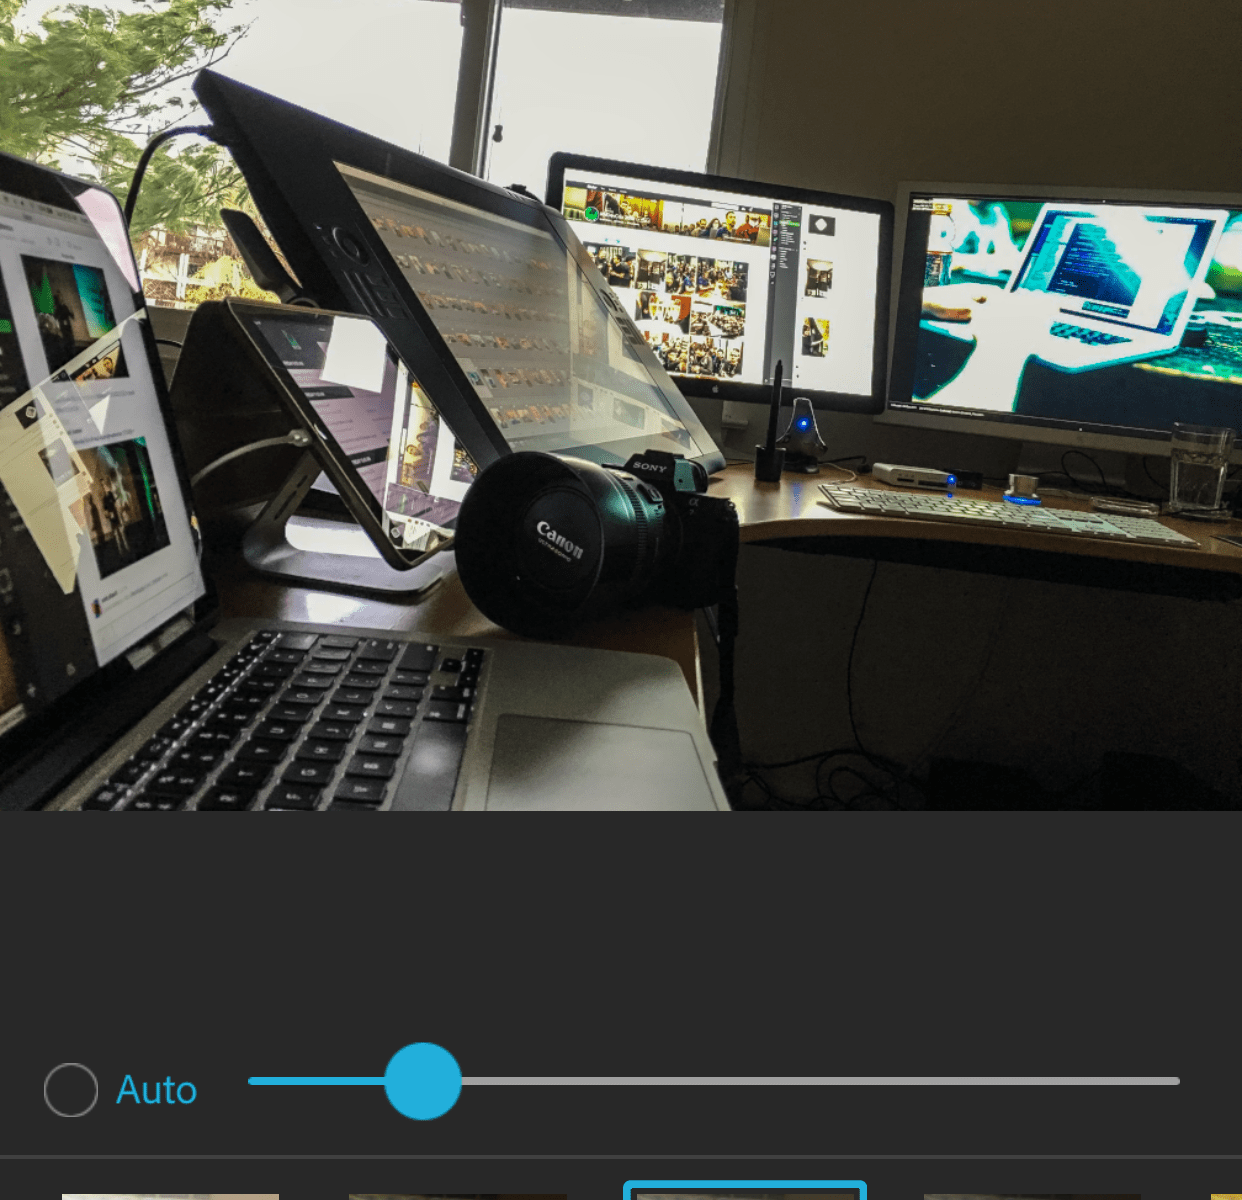 One of the awesome features of the Sony A7R II is WiFi - I can connect my iPhone to the camera and download images right away. So I actually have two different Post workflows. I download some photos right after taking them onto my iPhone and process them in Photoshop Express for iOS. It's actually an amazingly powerful app. Lightroom for iOS has great features but is still way too laggy to be part of my normal workflow. The vast majority I download later on my old Mac Pro and process in Lightroom. I have two older Apple Cinema displays and a Cintiq 24HD, I color calibrate all of them with a Spyder from DataColor.